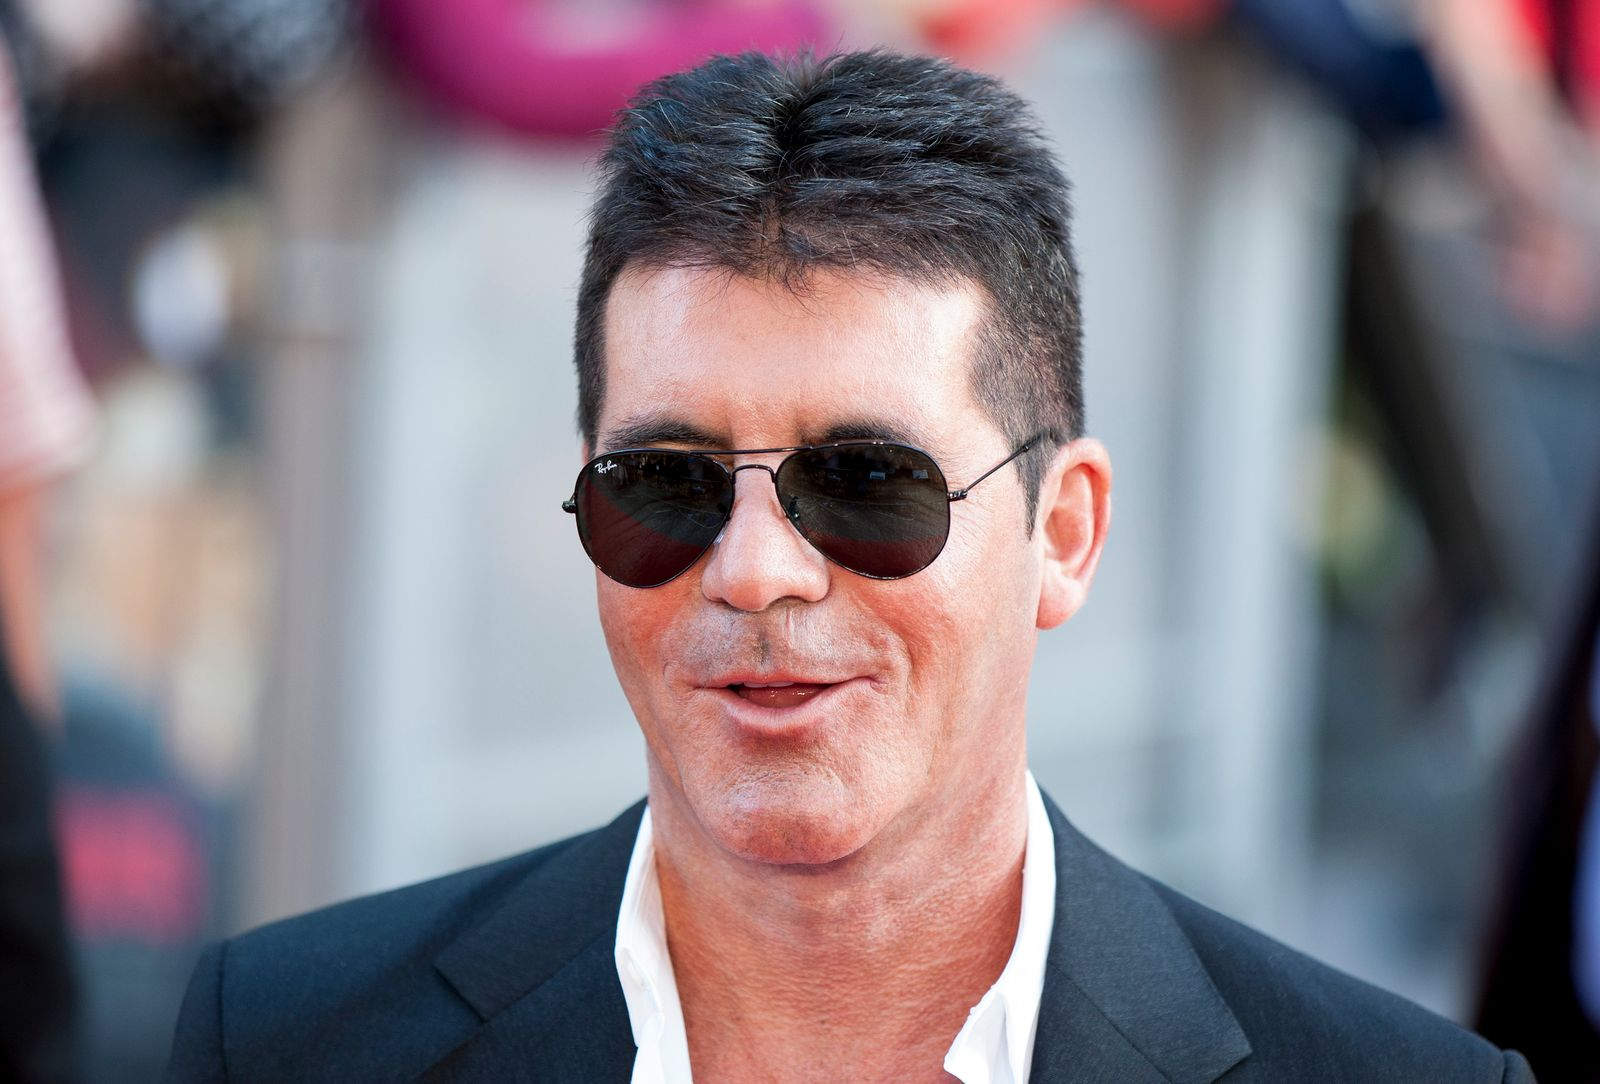 """Entertainment producer Simon Cowell attend the 2013 world premiere of """"One Direction"""" in London. 